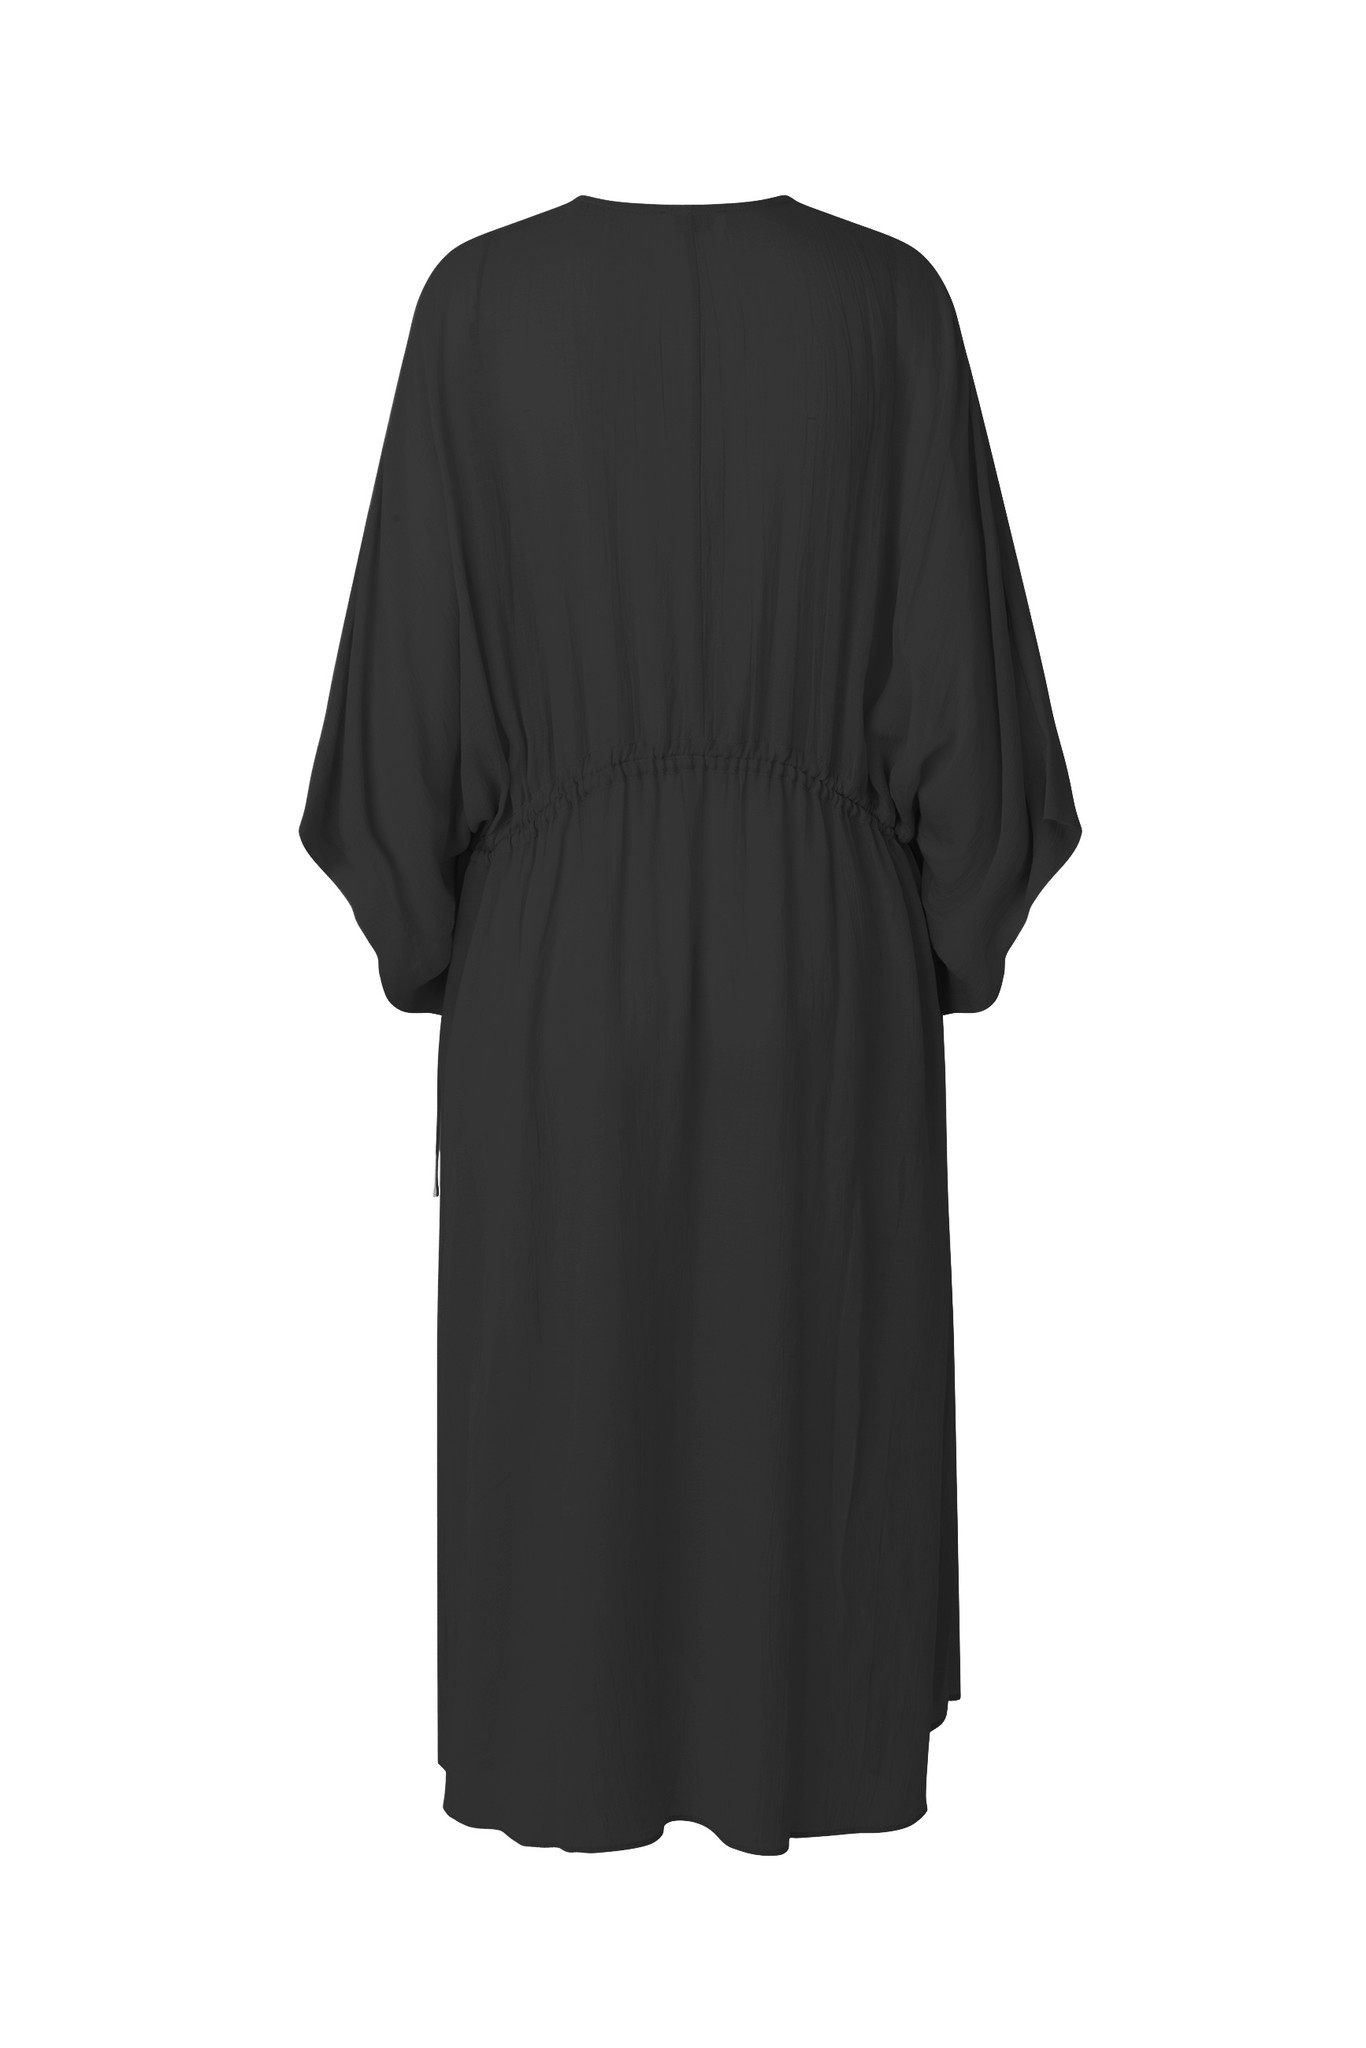 Tamia Dress - Black-2